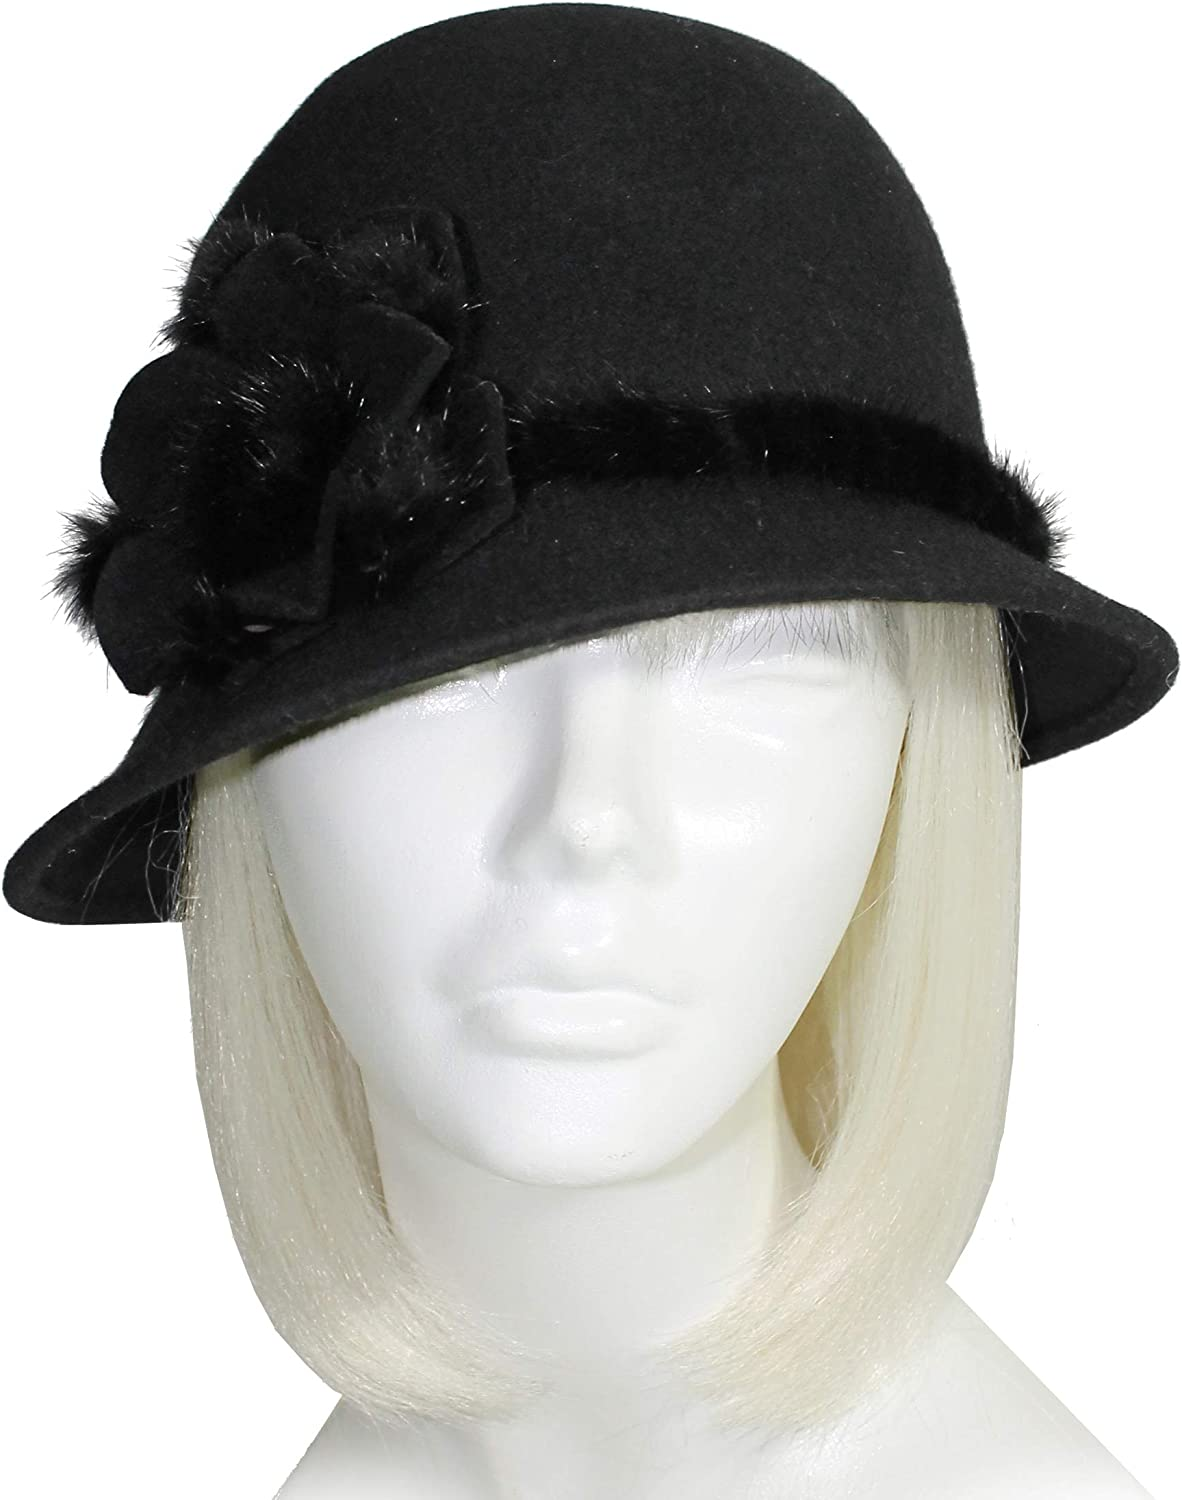 Mr. Song Millinery Felt Bell Cloche Hat with Bias Brim  Black FH131